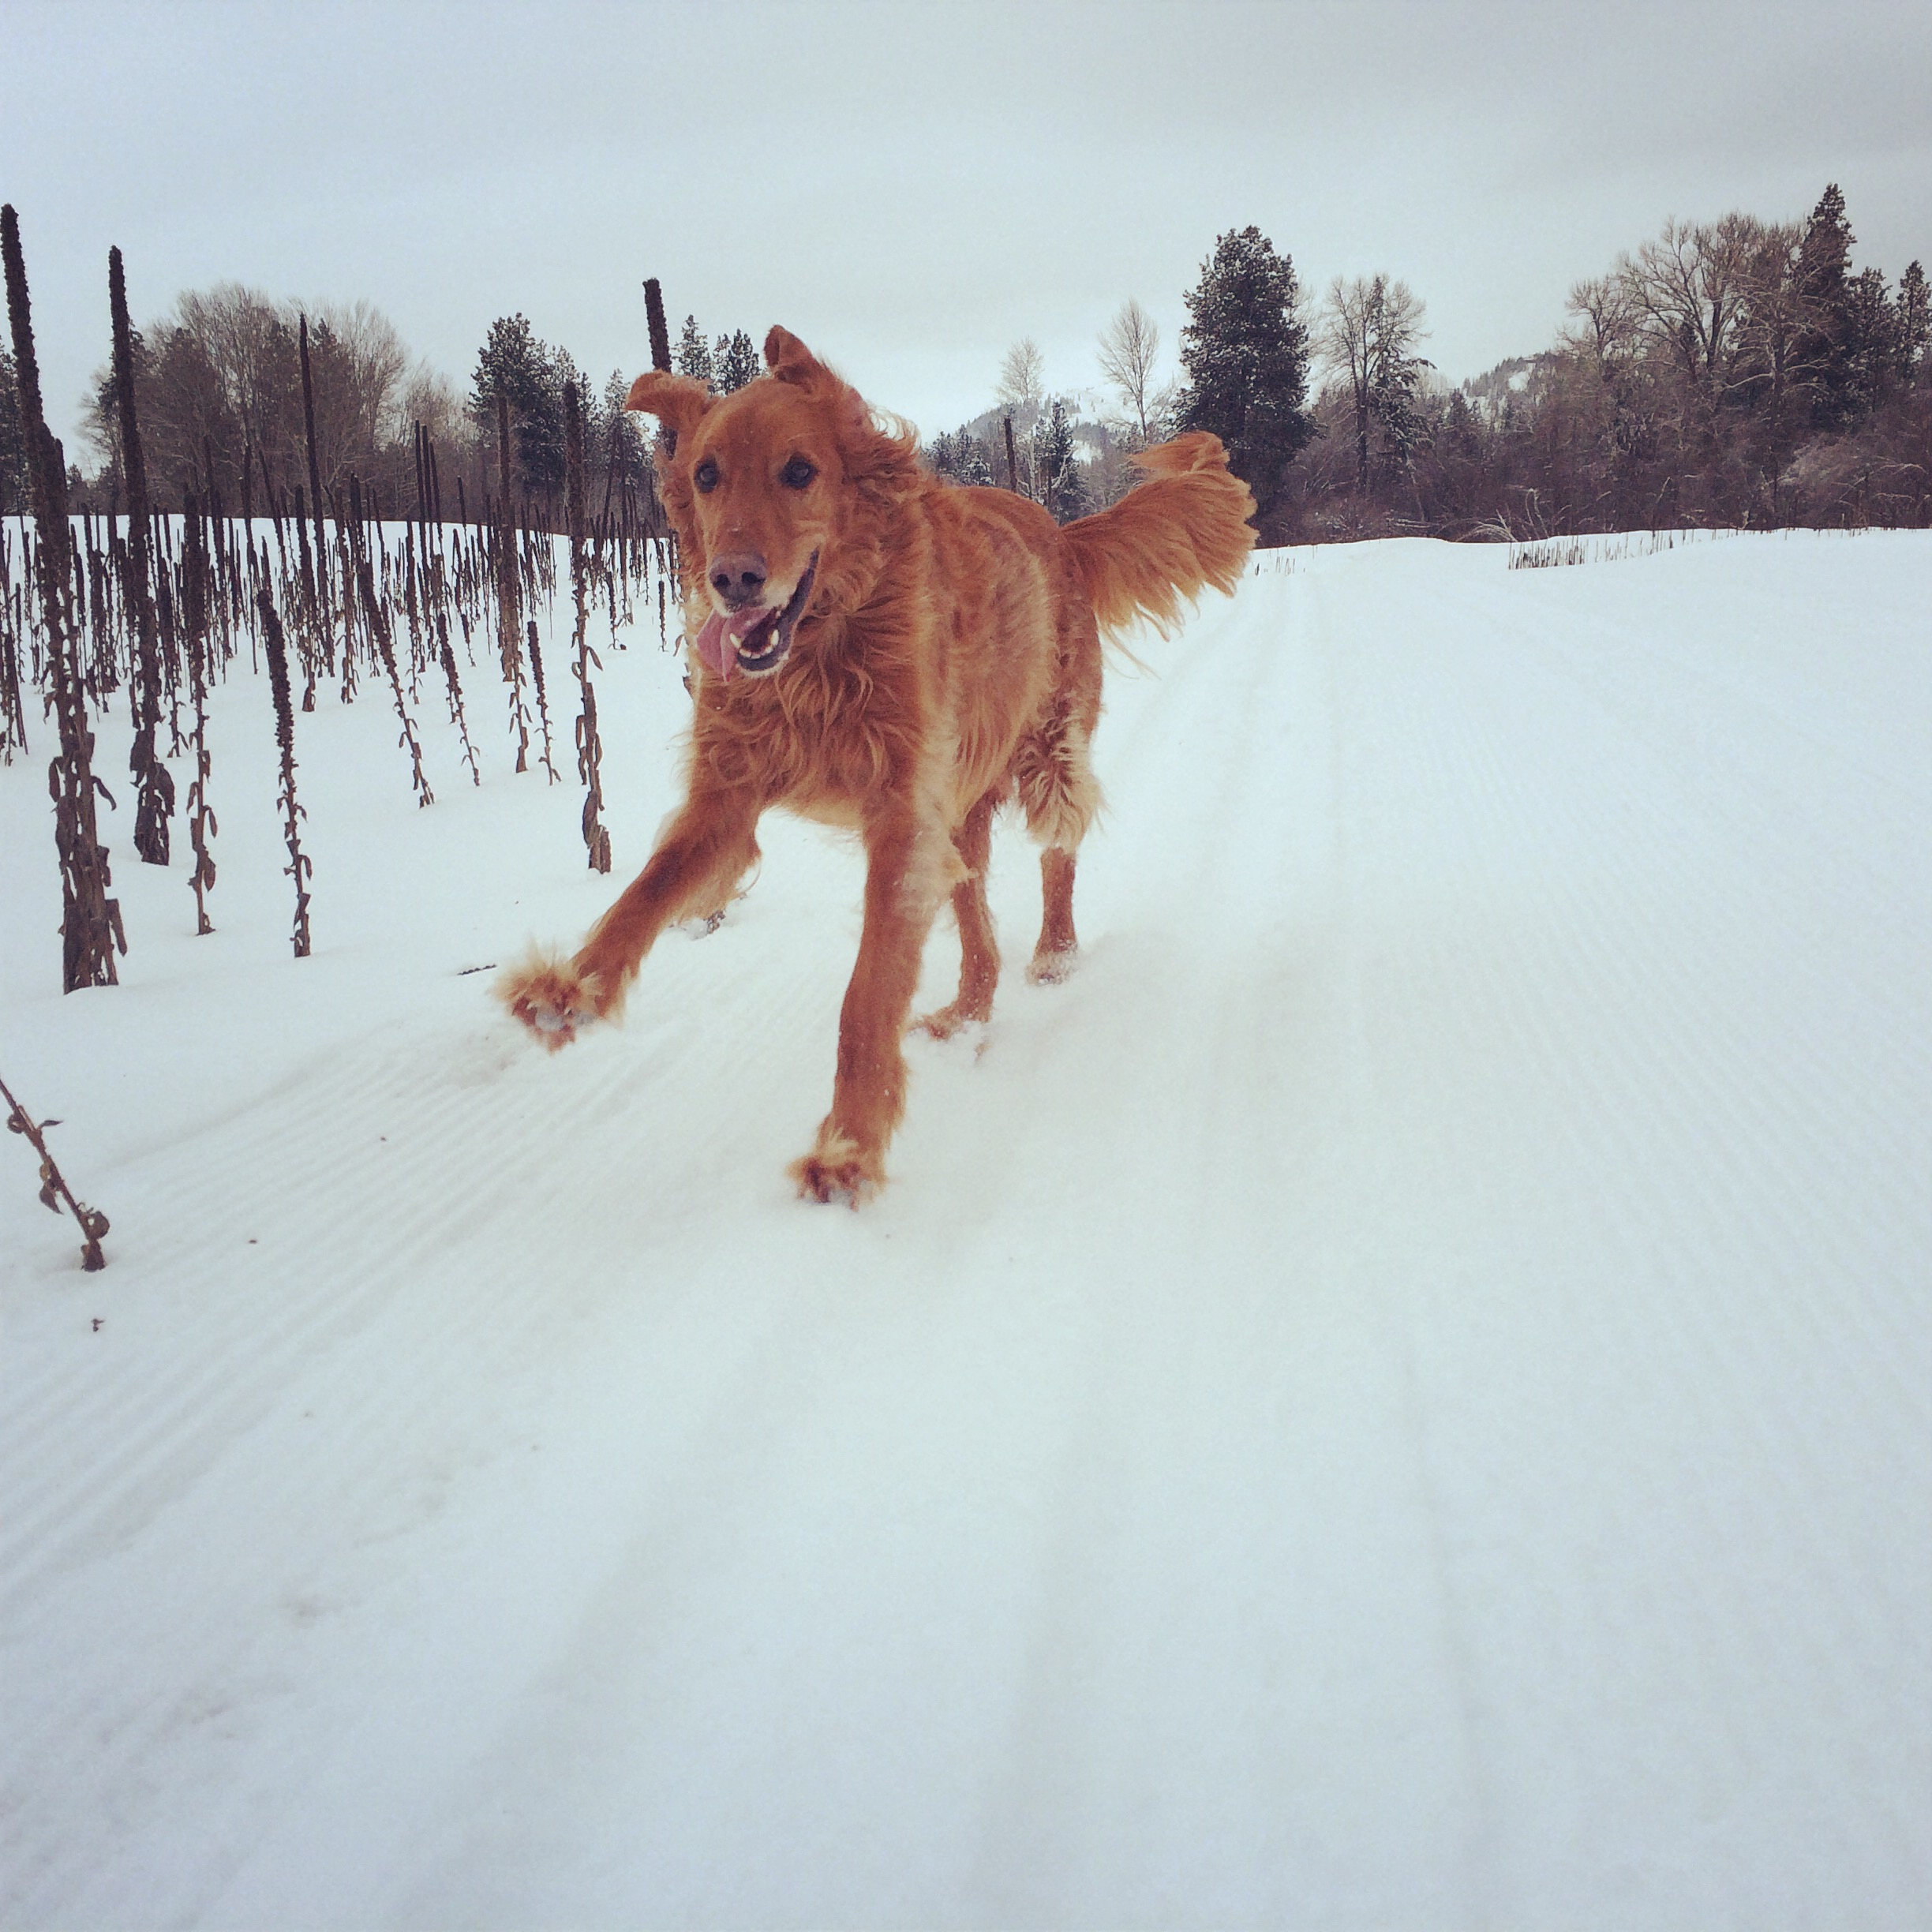 Run Boris Run- The B Dog skiing Big Valley Ranch - Methow Trails